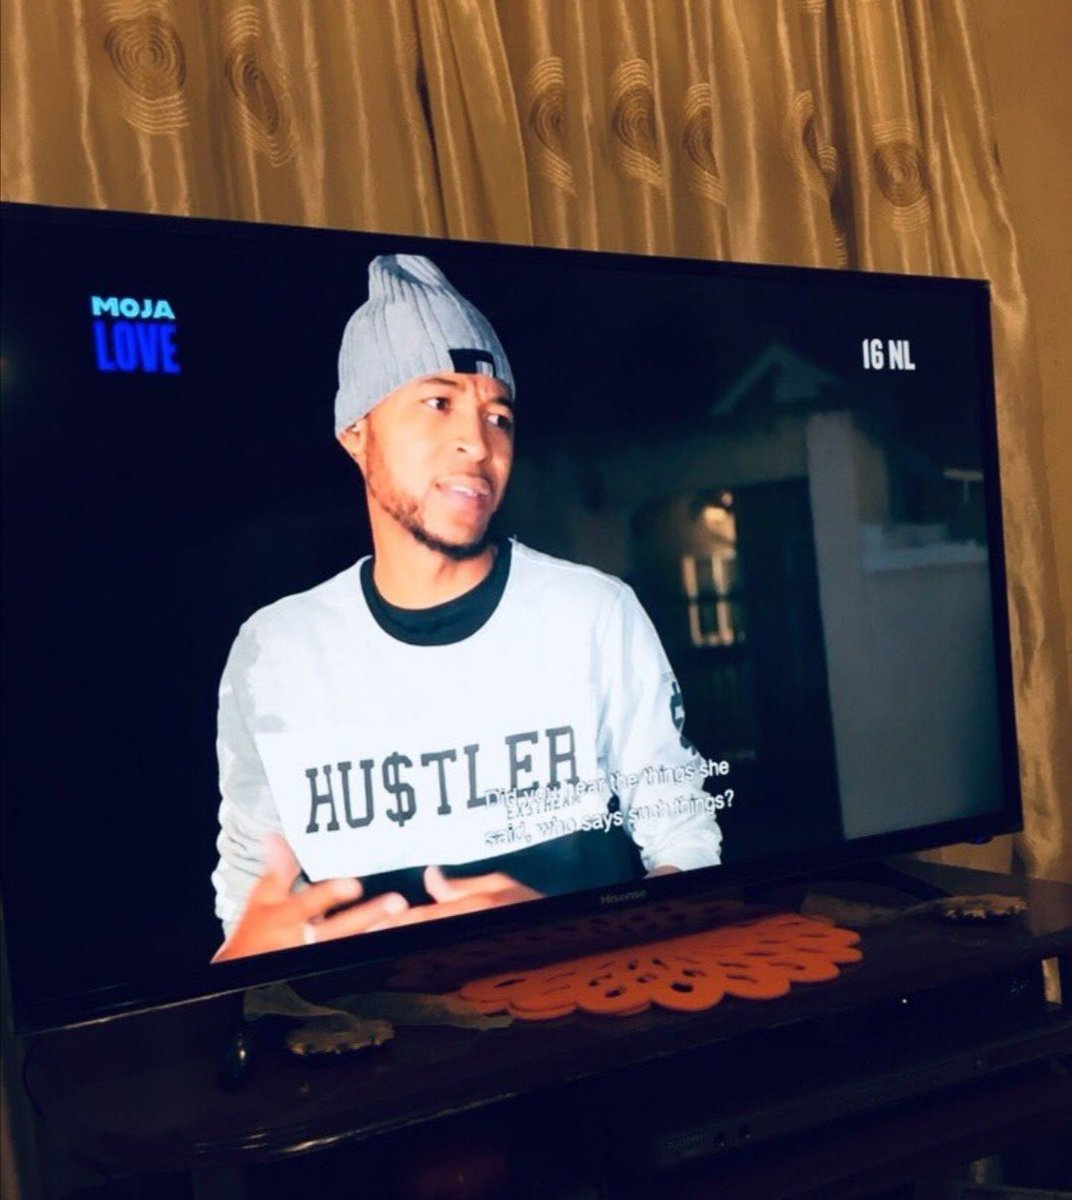 Jub jub help me hle I wanna be there for Mlu #Uyajola99 <br>http://pic.twitter.com/l6DazaBYZa